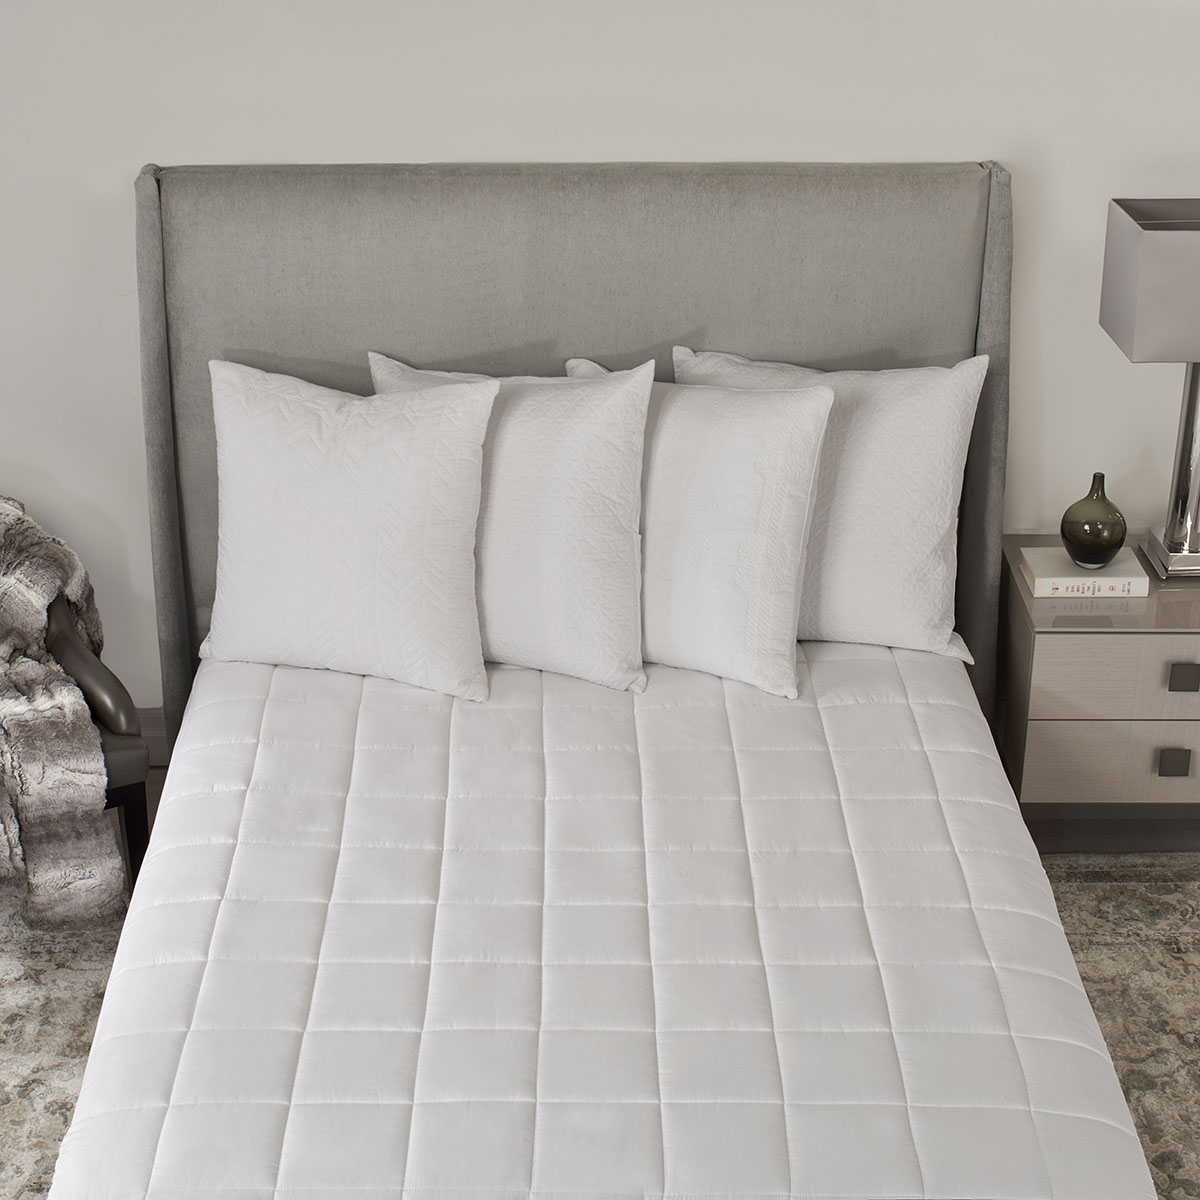 Sunbeam® Ultra Premium Quilted Heated Mattress Pad, Queen ...